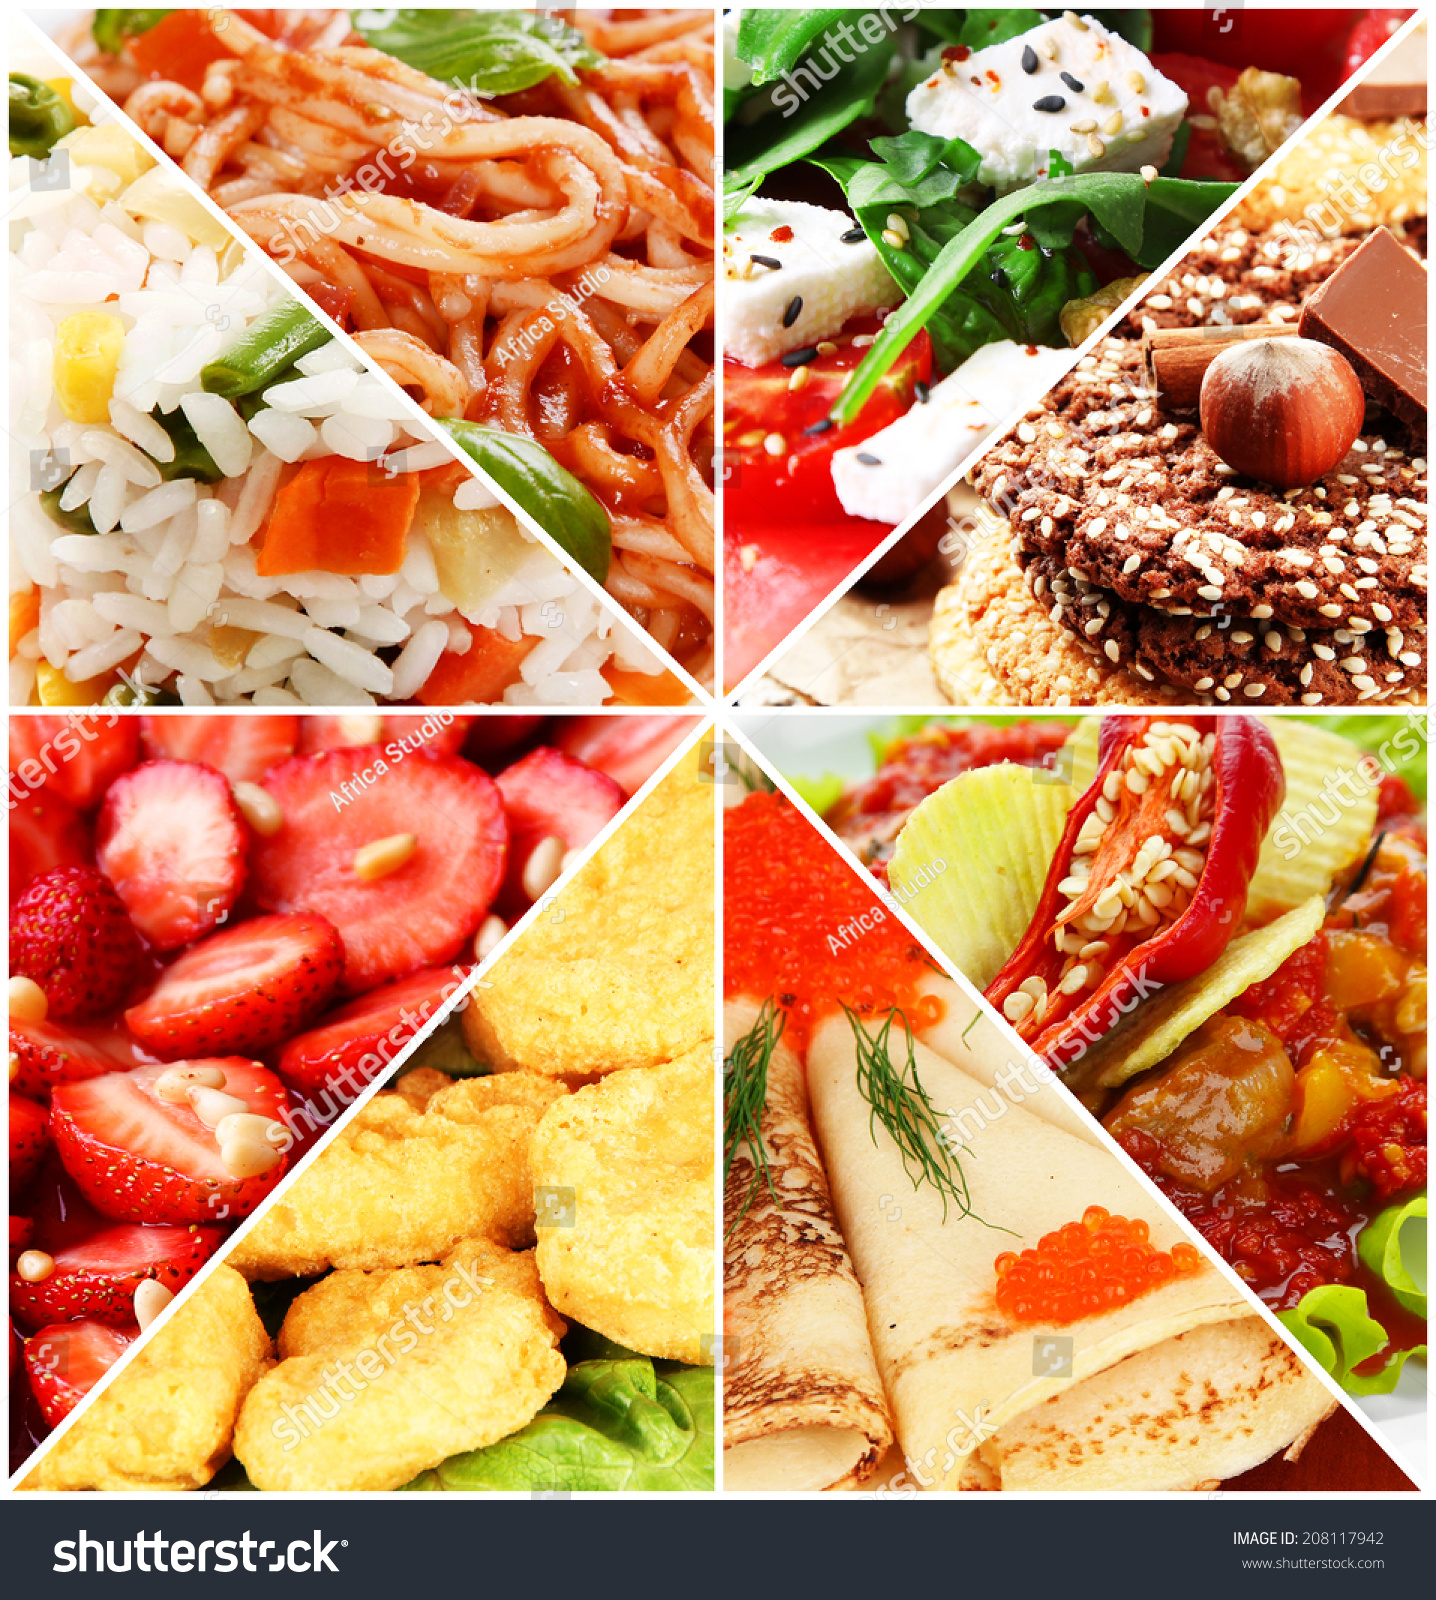 Collage Of Delicious Food Close-Up Stock Photo 208117942 ...